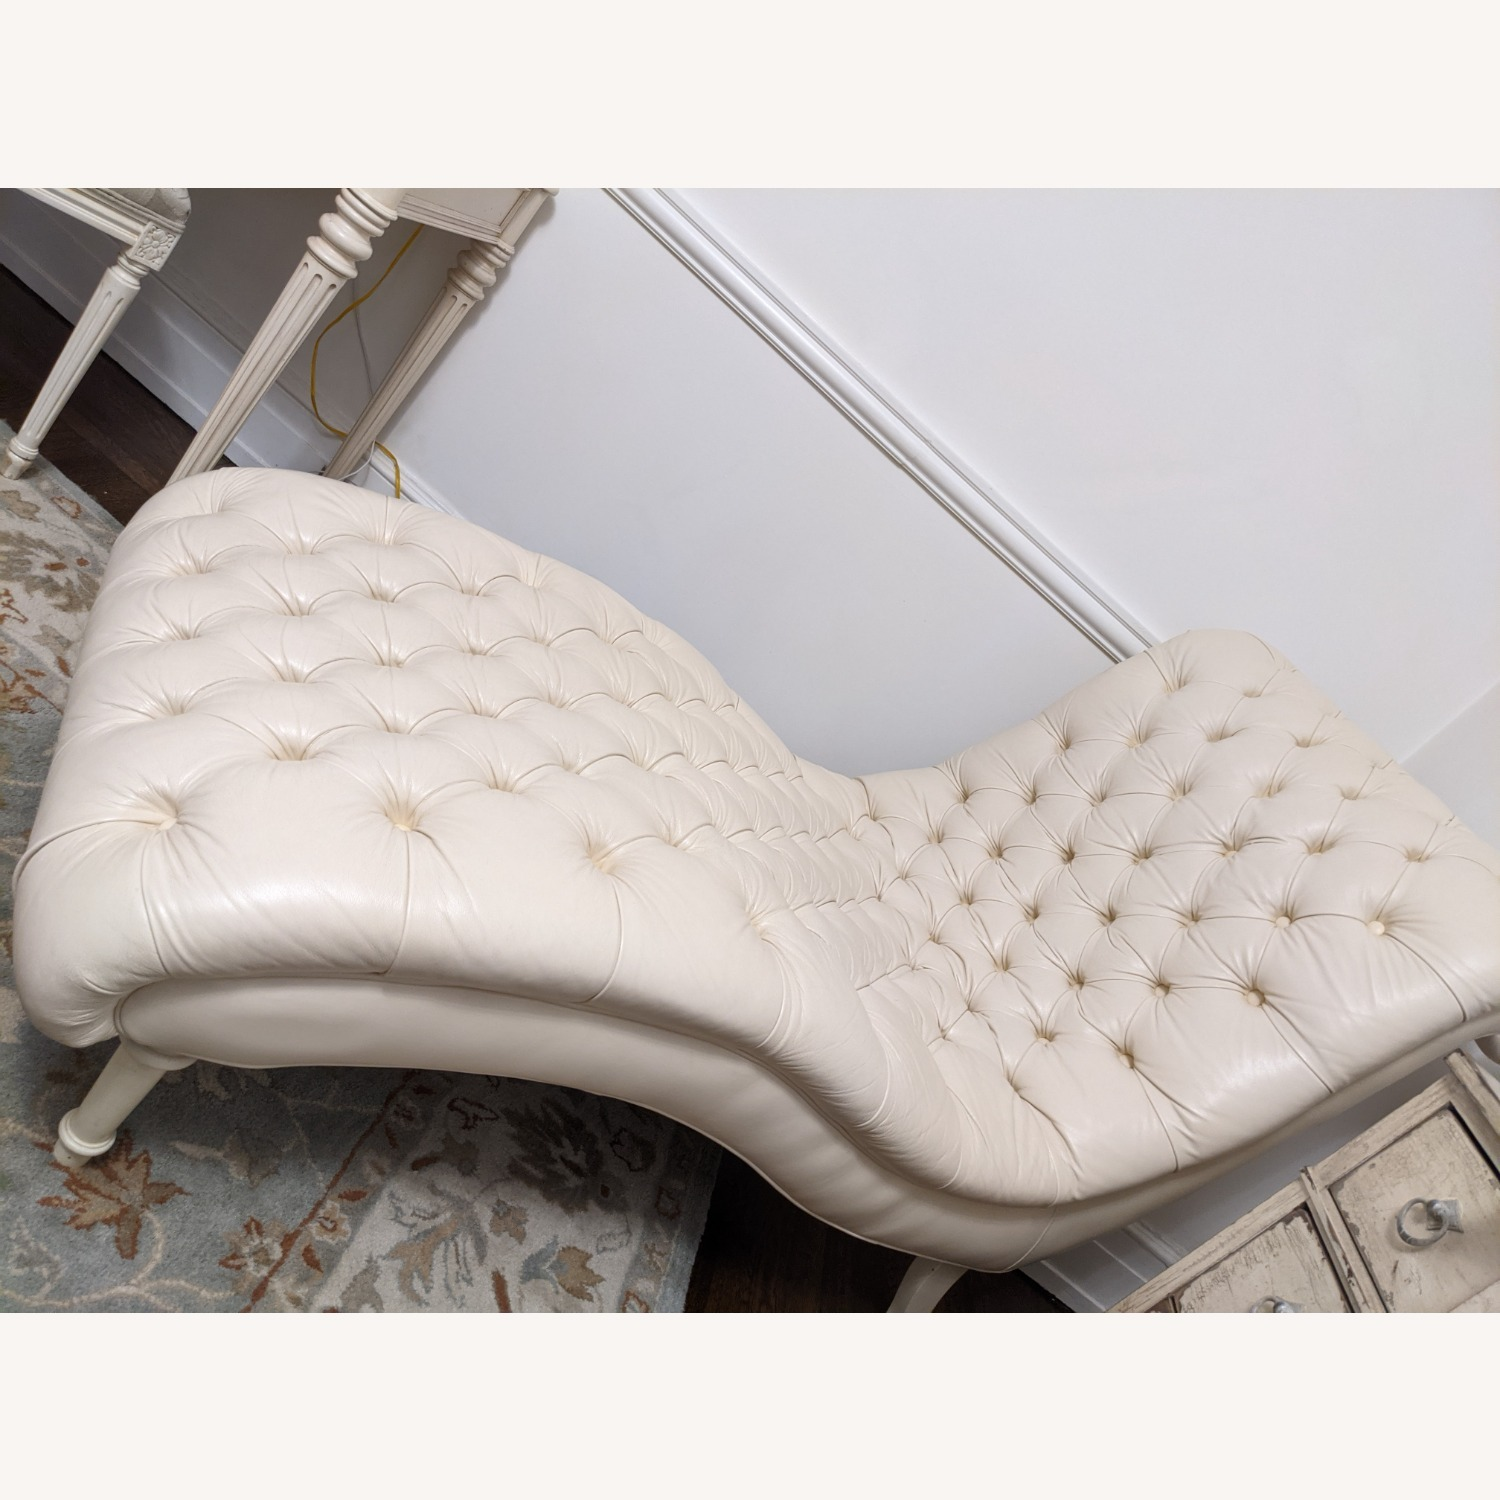 Ethan Allen Leather Chaise Long - image-3